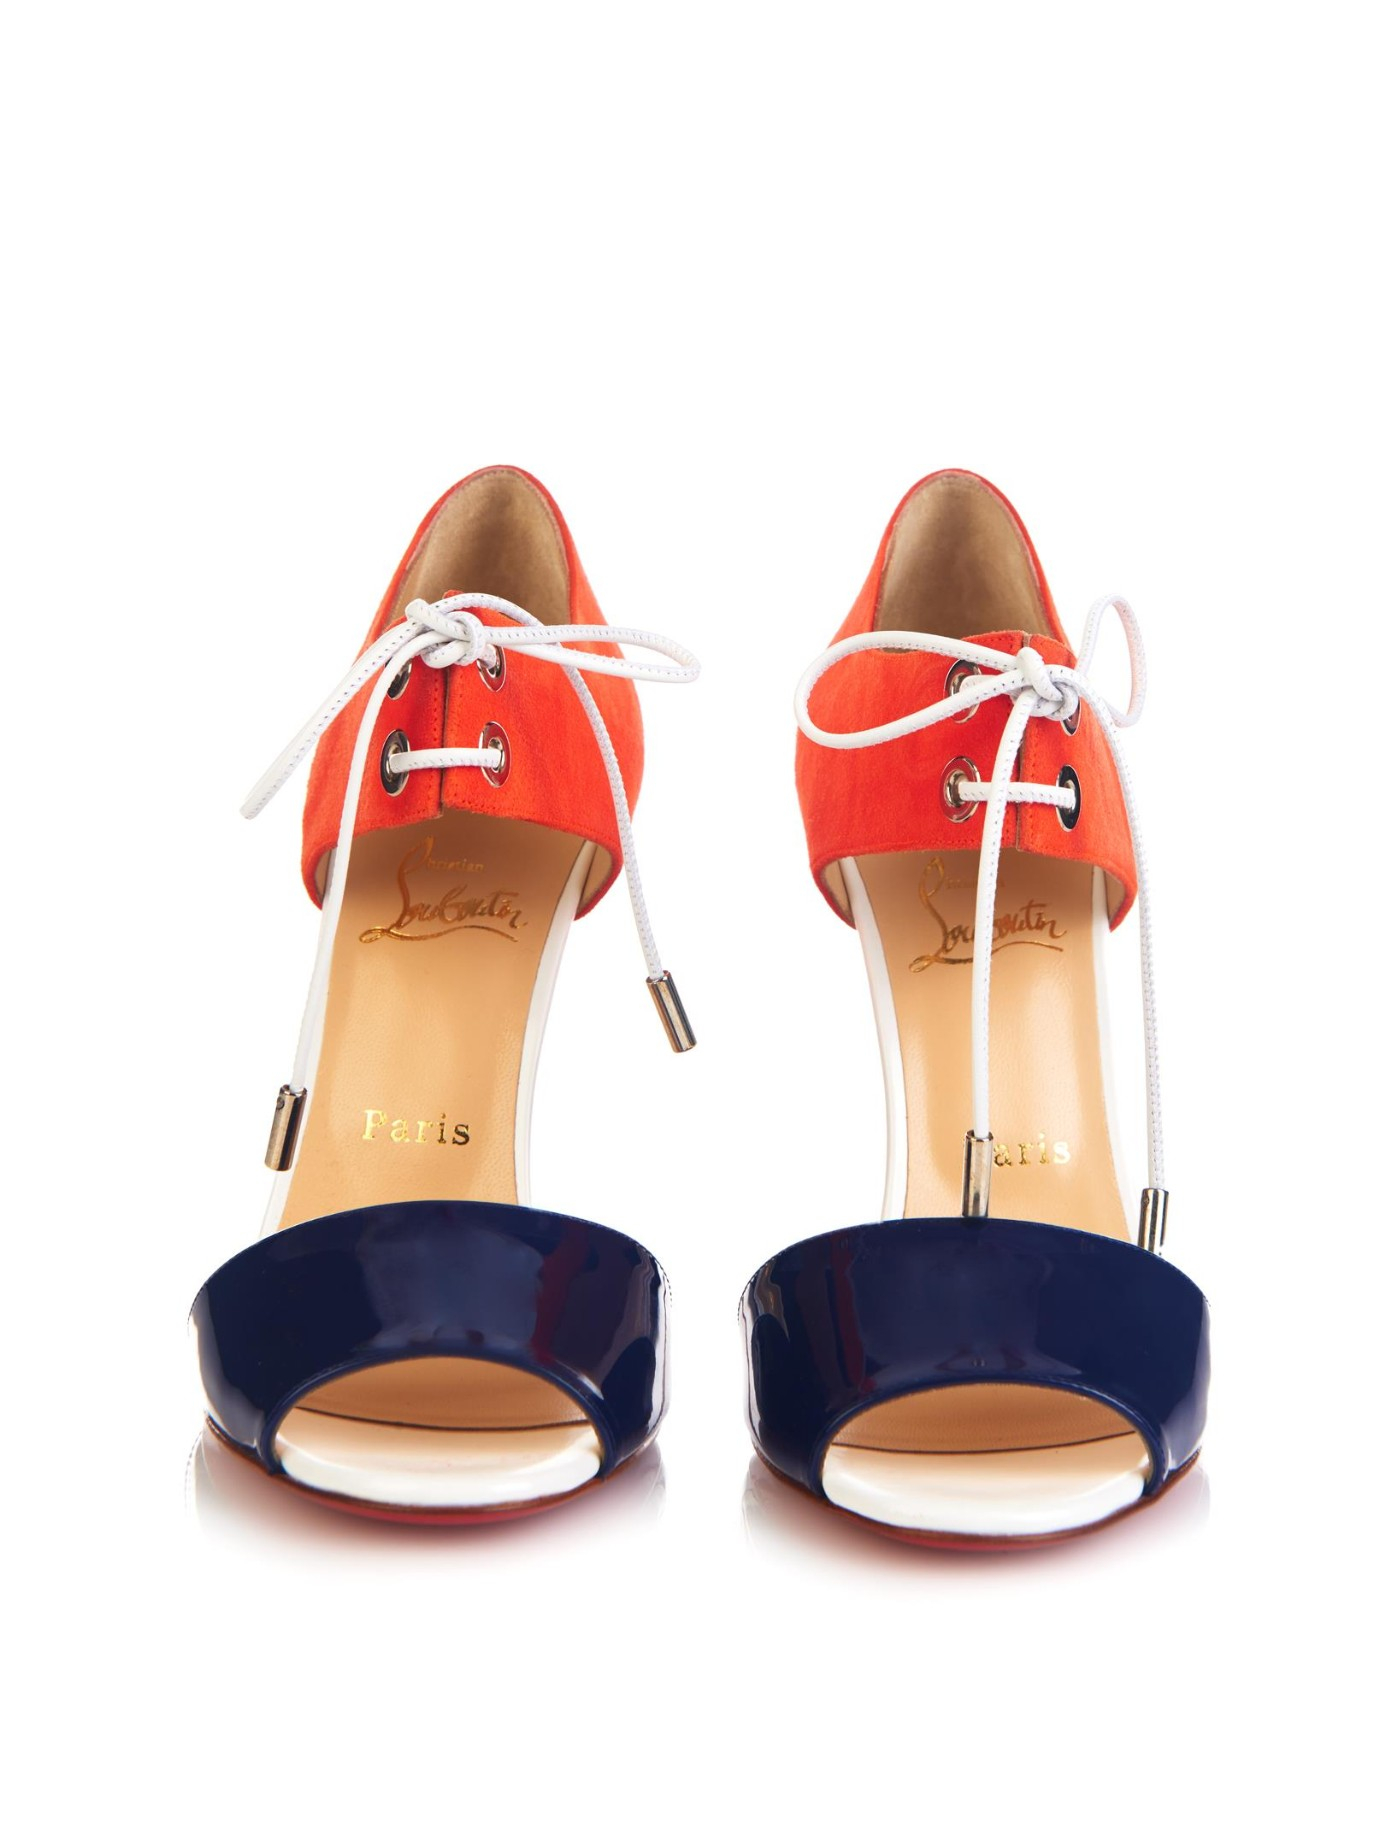 Christian louboutin Mayerling Patent Leather and Suede Sandals in ...